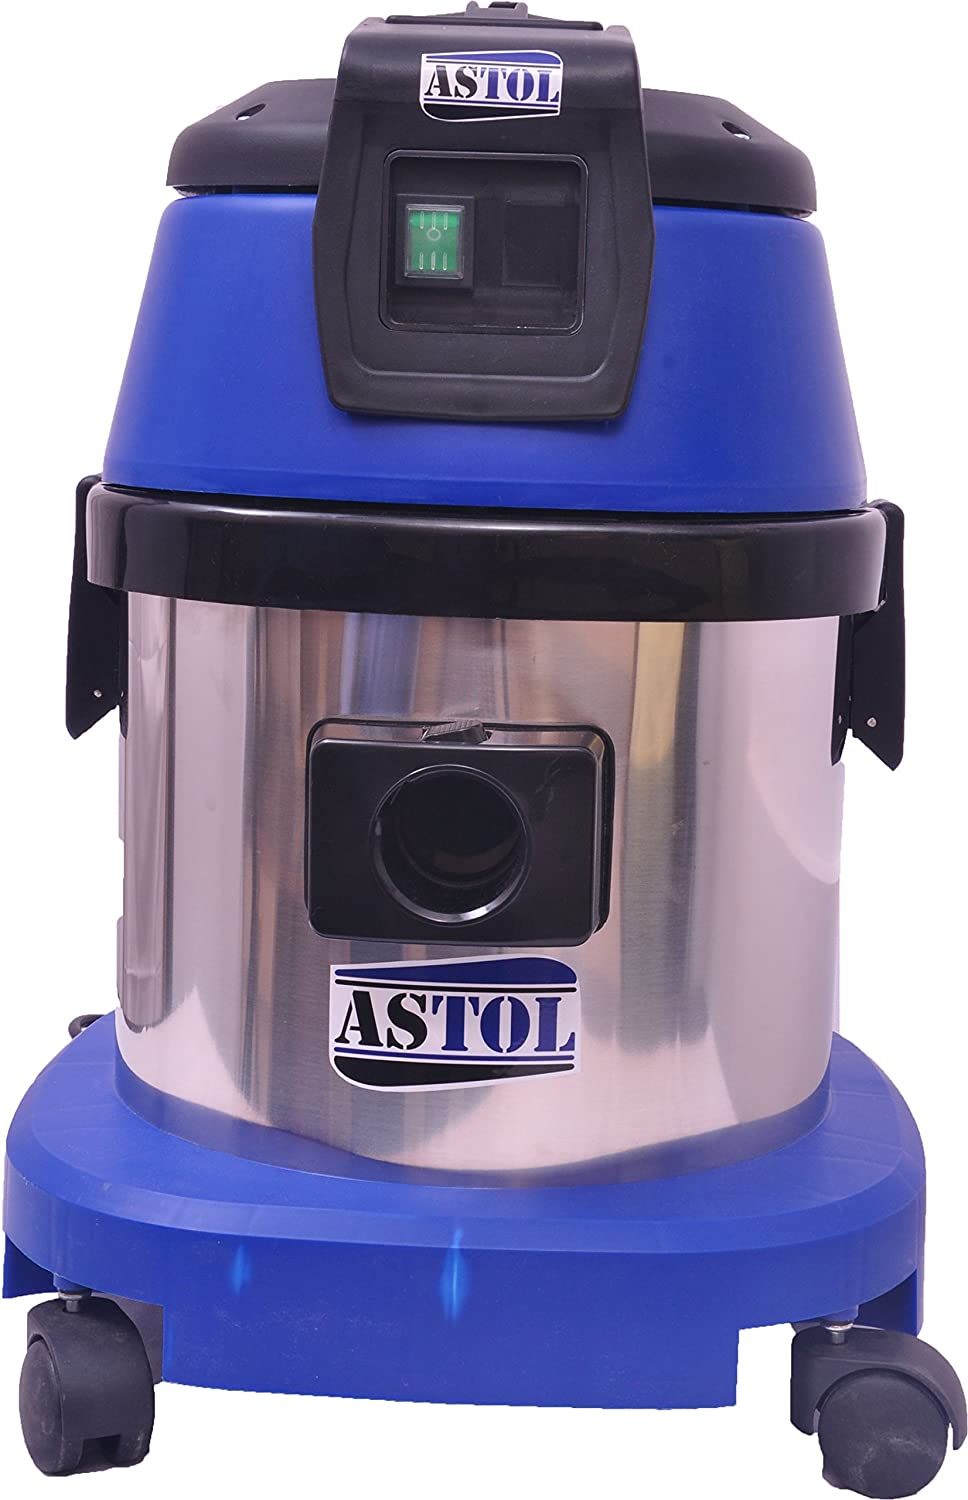 Astol SV15 Wet and Dry Vacuum Cleaner